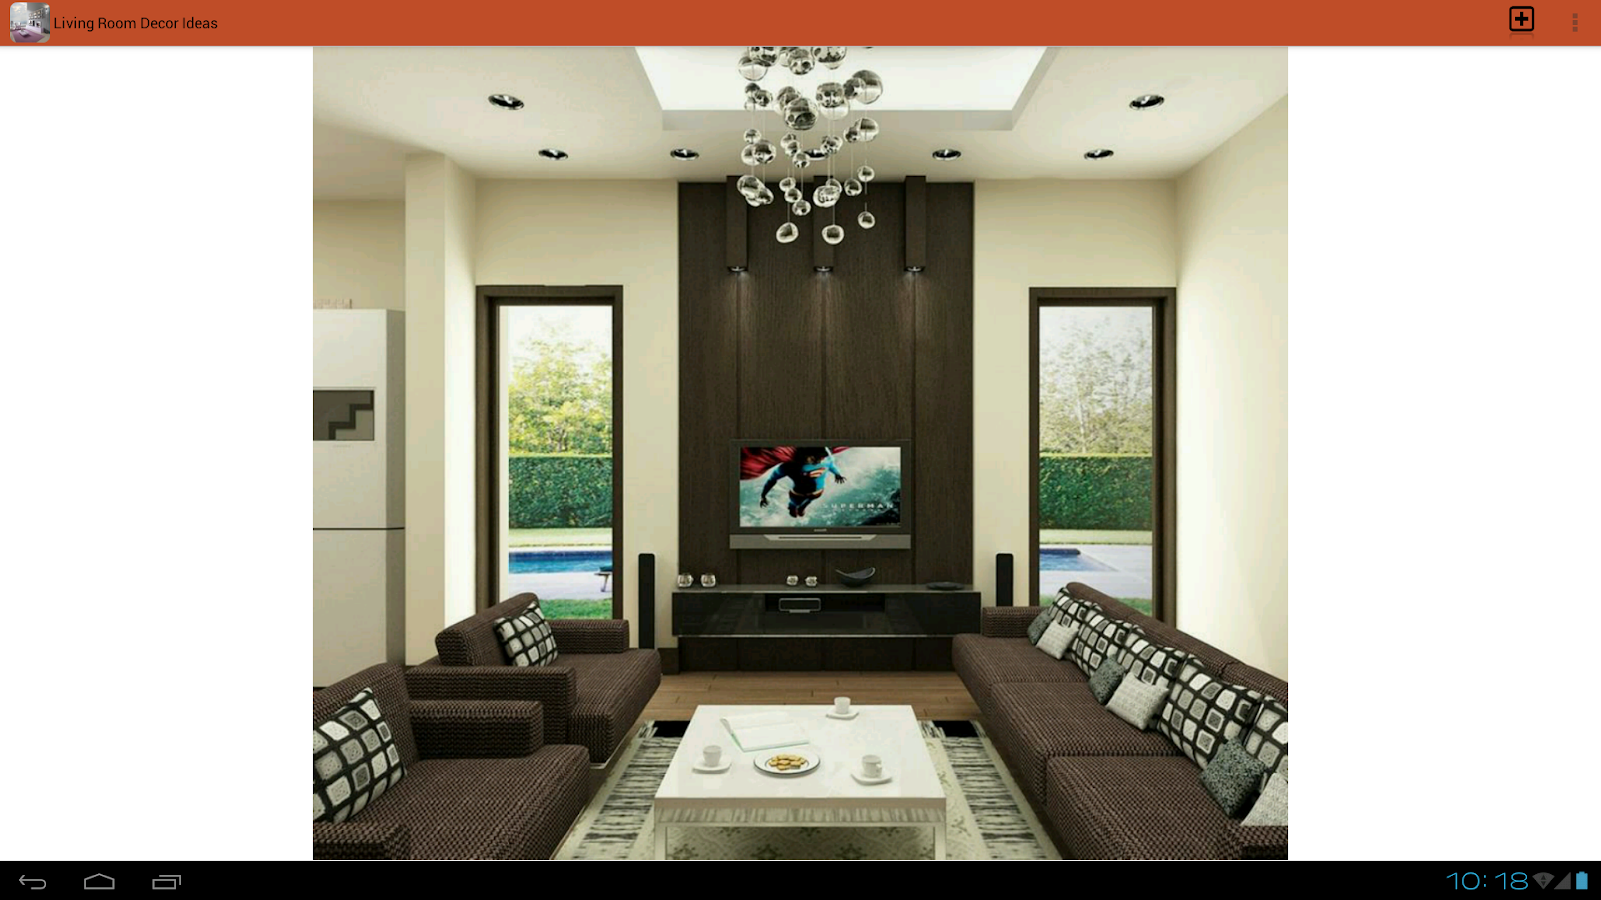 Living room decor ideas android apps on google play for Living room design app